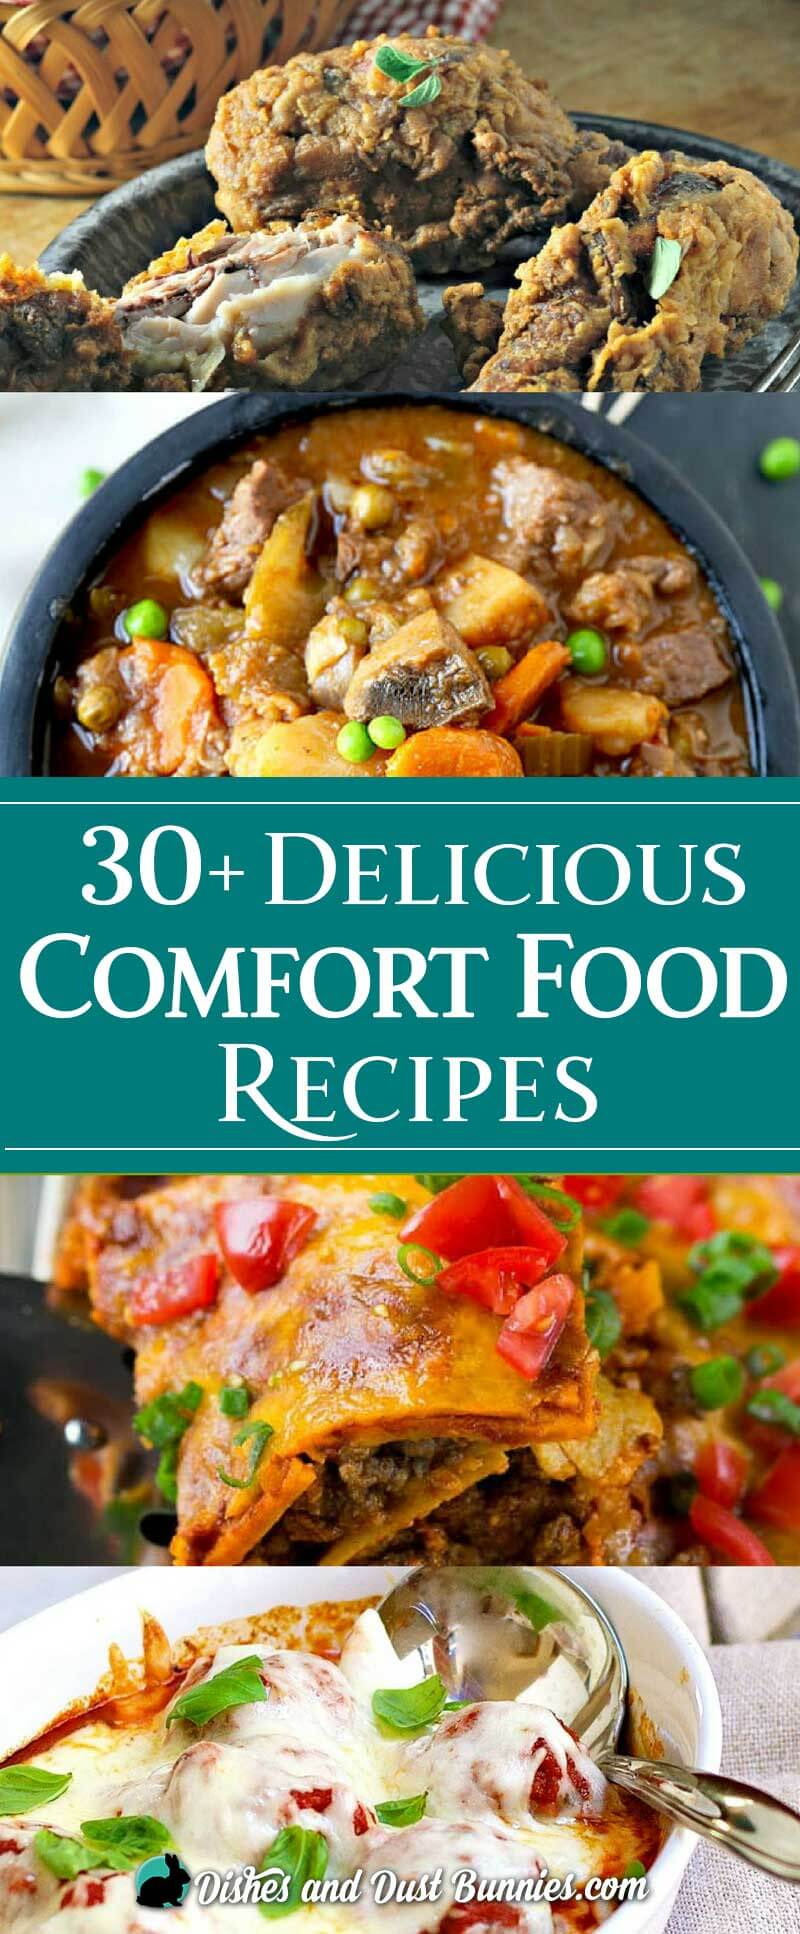 30+ Delicious Comfort Food Recipes - dishesanddustbunnies.com